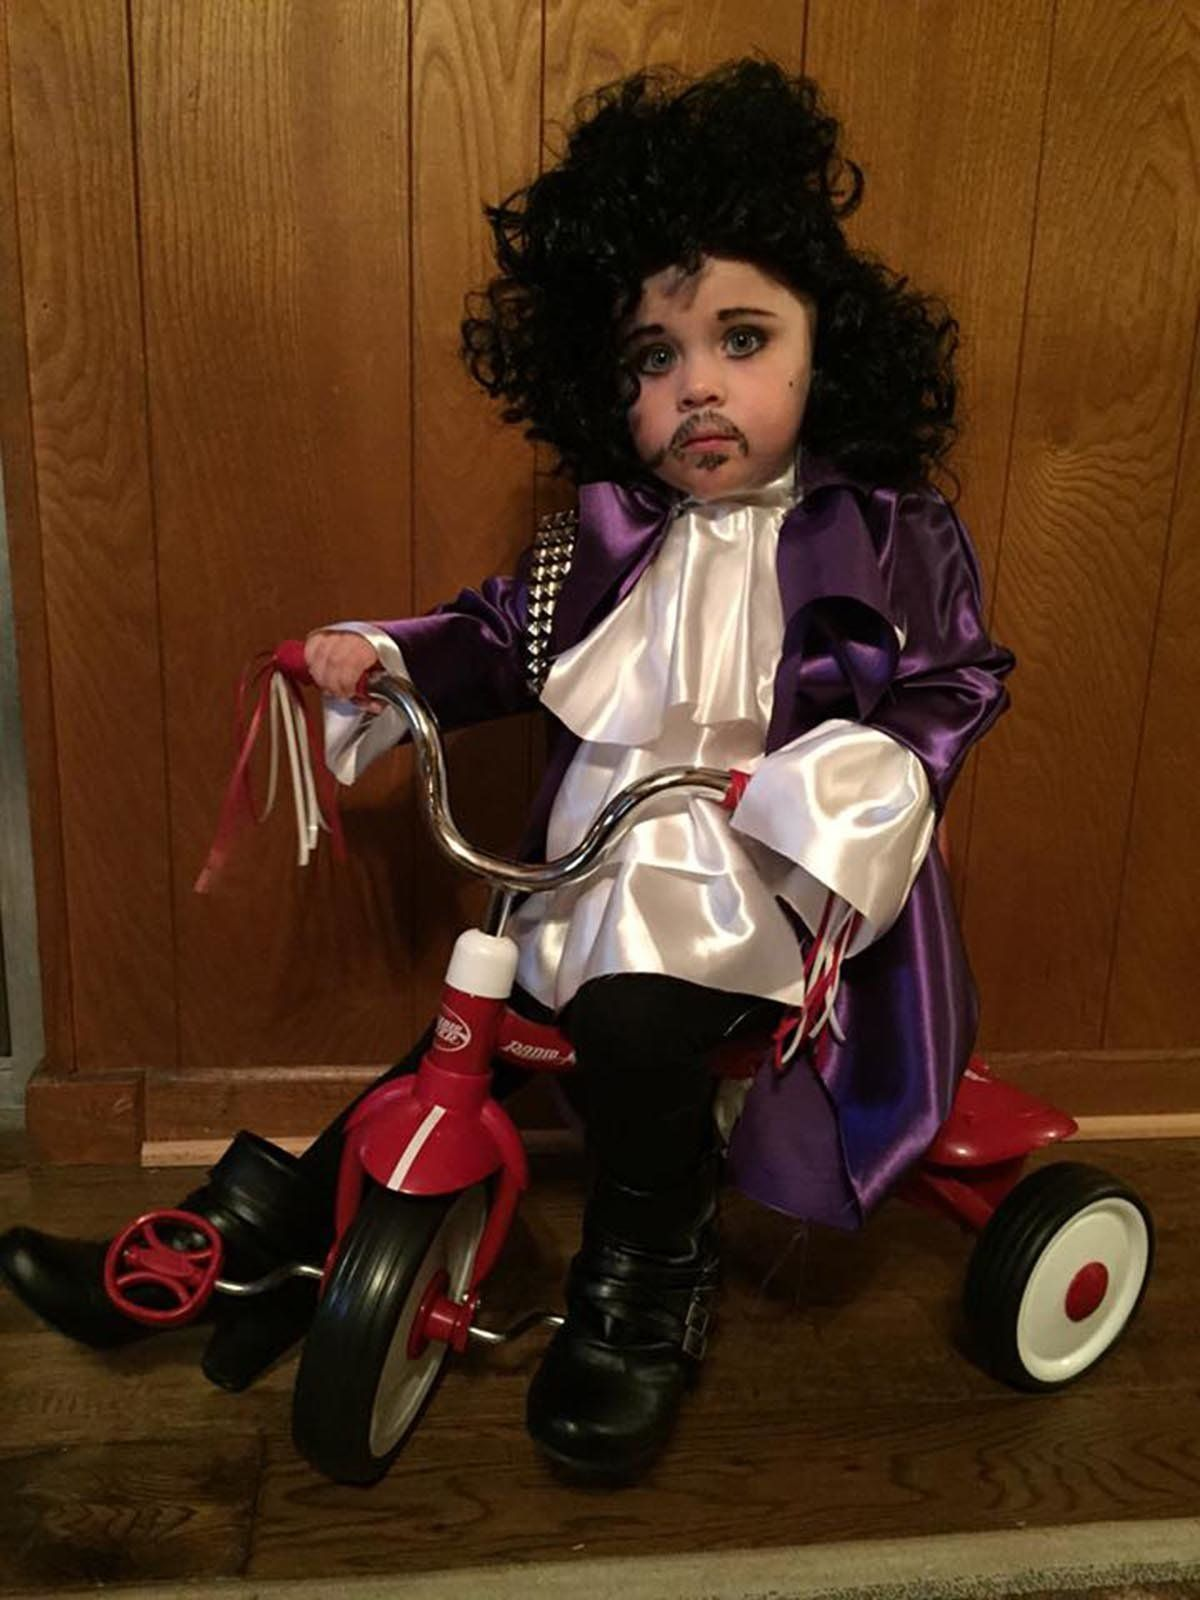 sc 1 st  HuffPost & 37 Pop Culture Halloween Costumes For Kids Who Are Too Cool   HuffPost